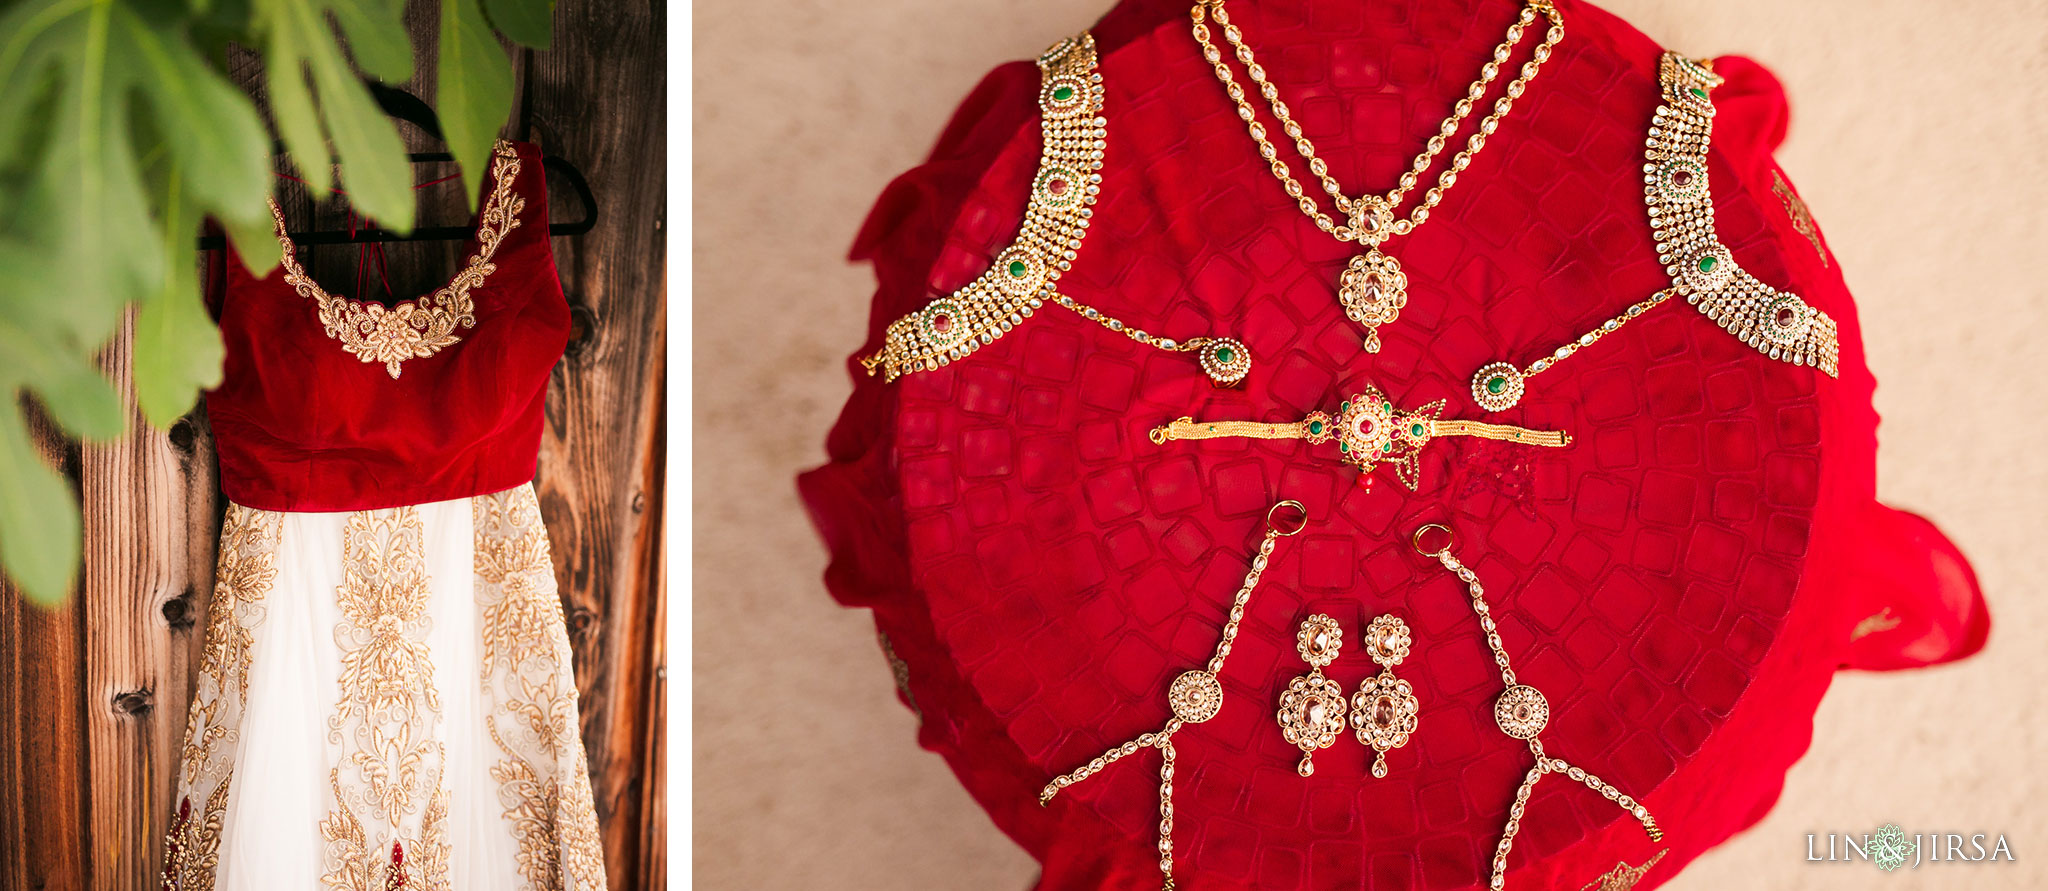 031 sherwood country club indian wedding photography